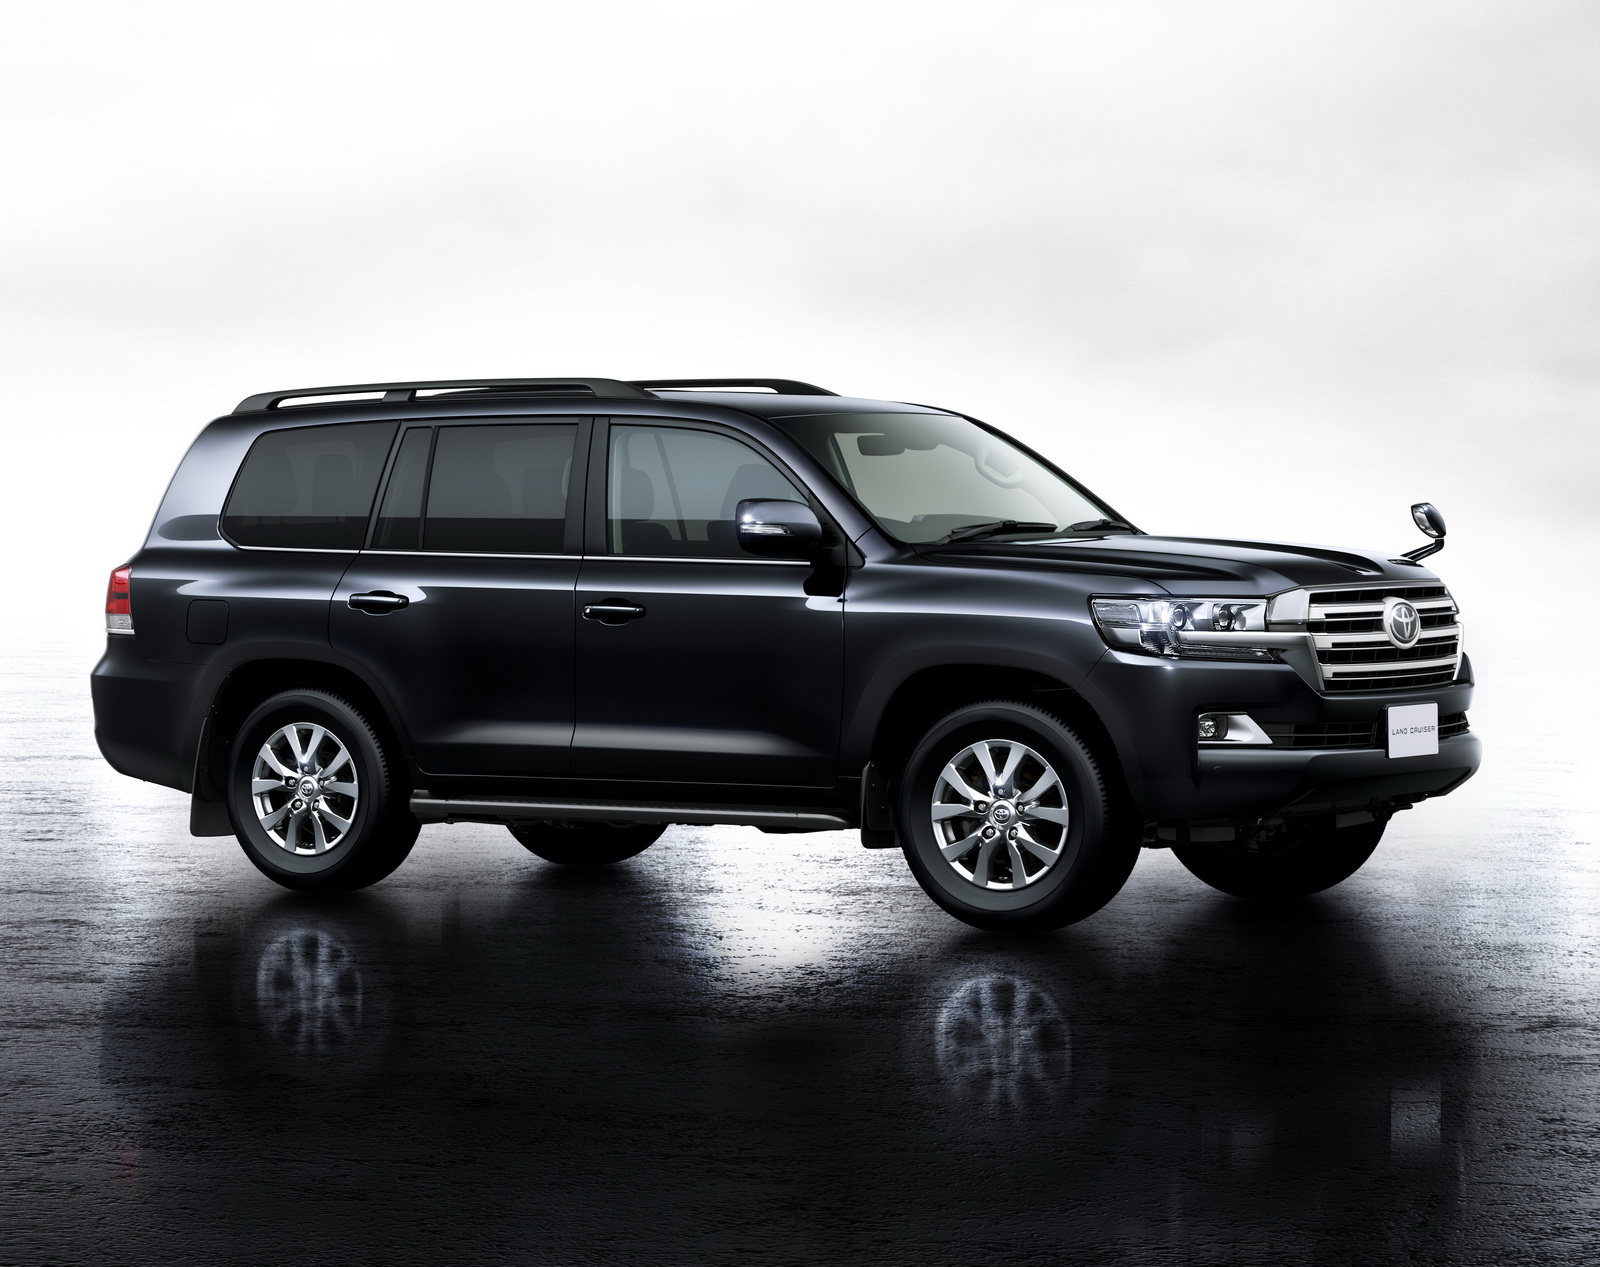 Images and details: Meet the new Toyota Land Cruiser 200 | Motoroids